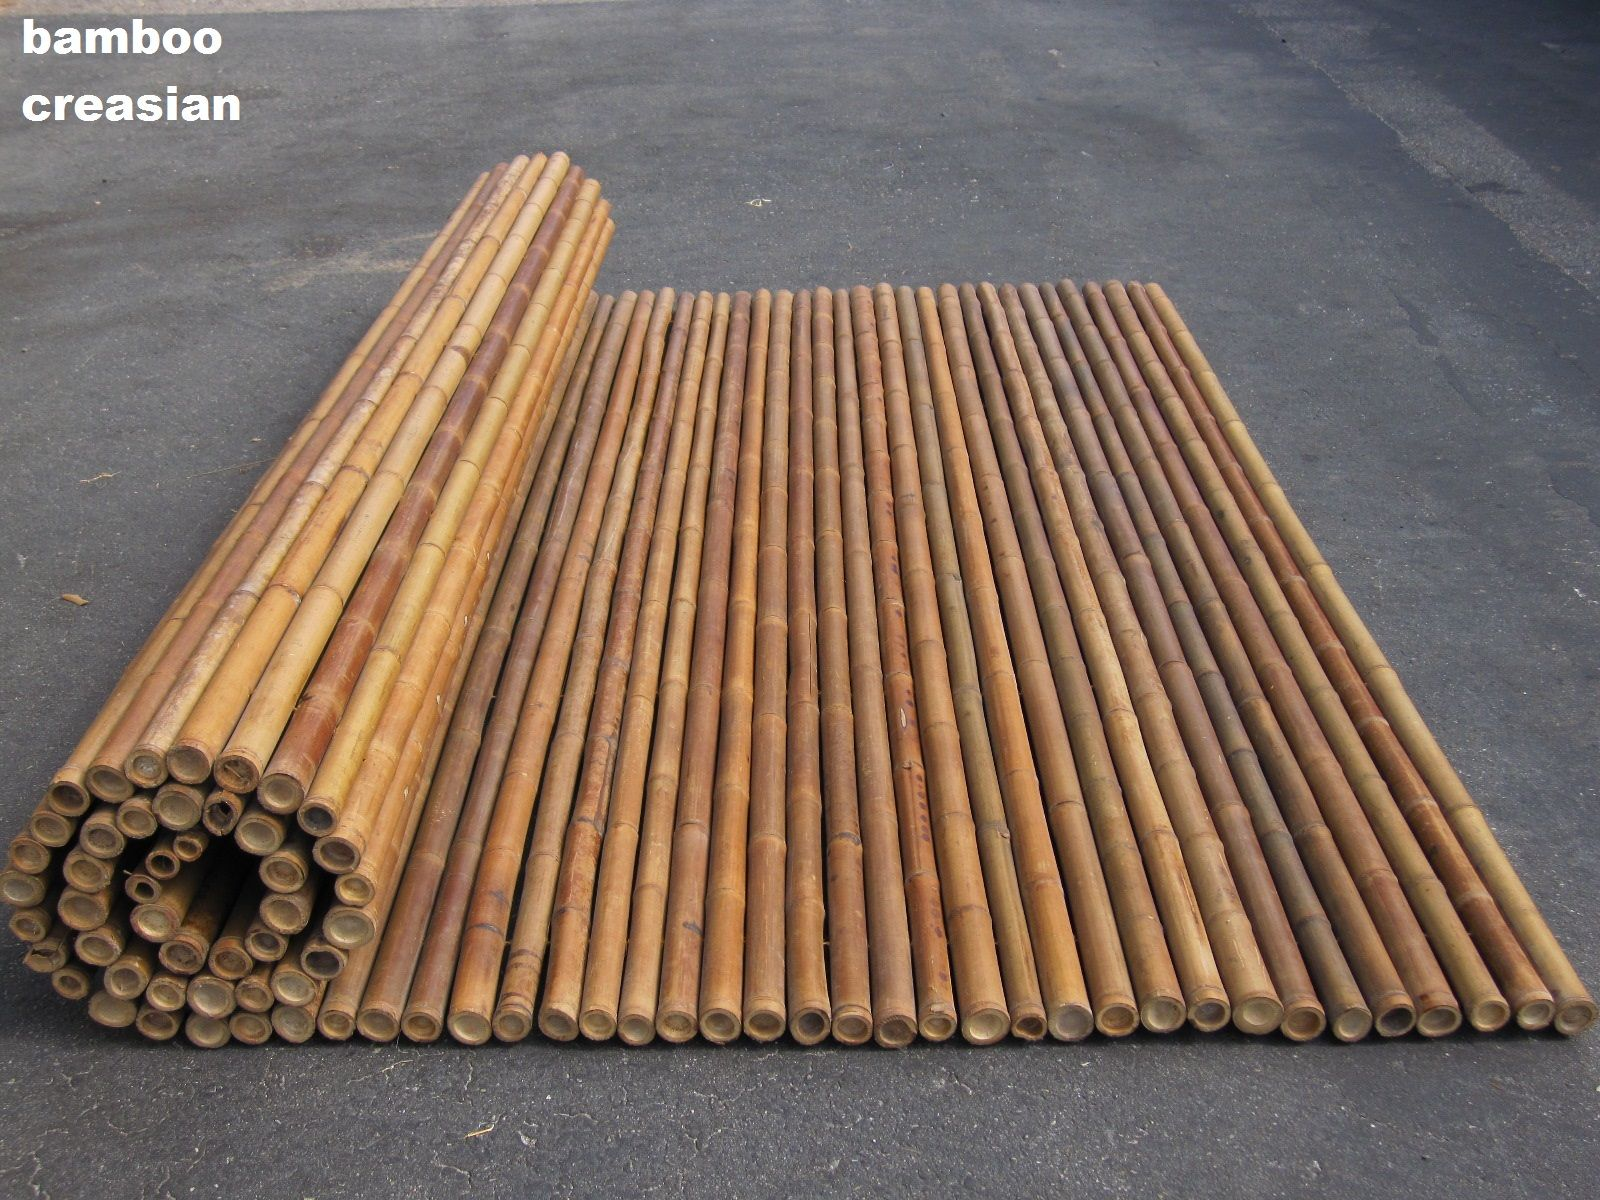 Httpbamboocreasian httpbamboocreasian bamboo fencing yard fencing baanklon Image collections